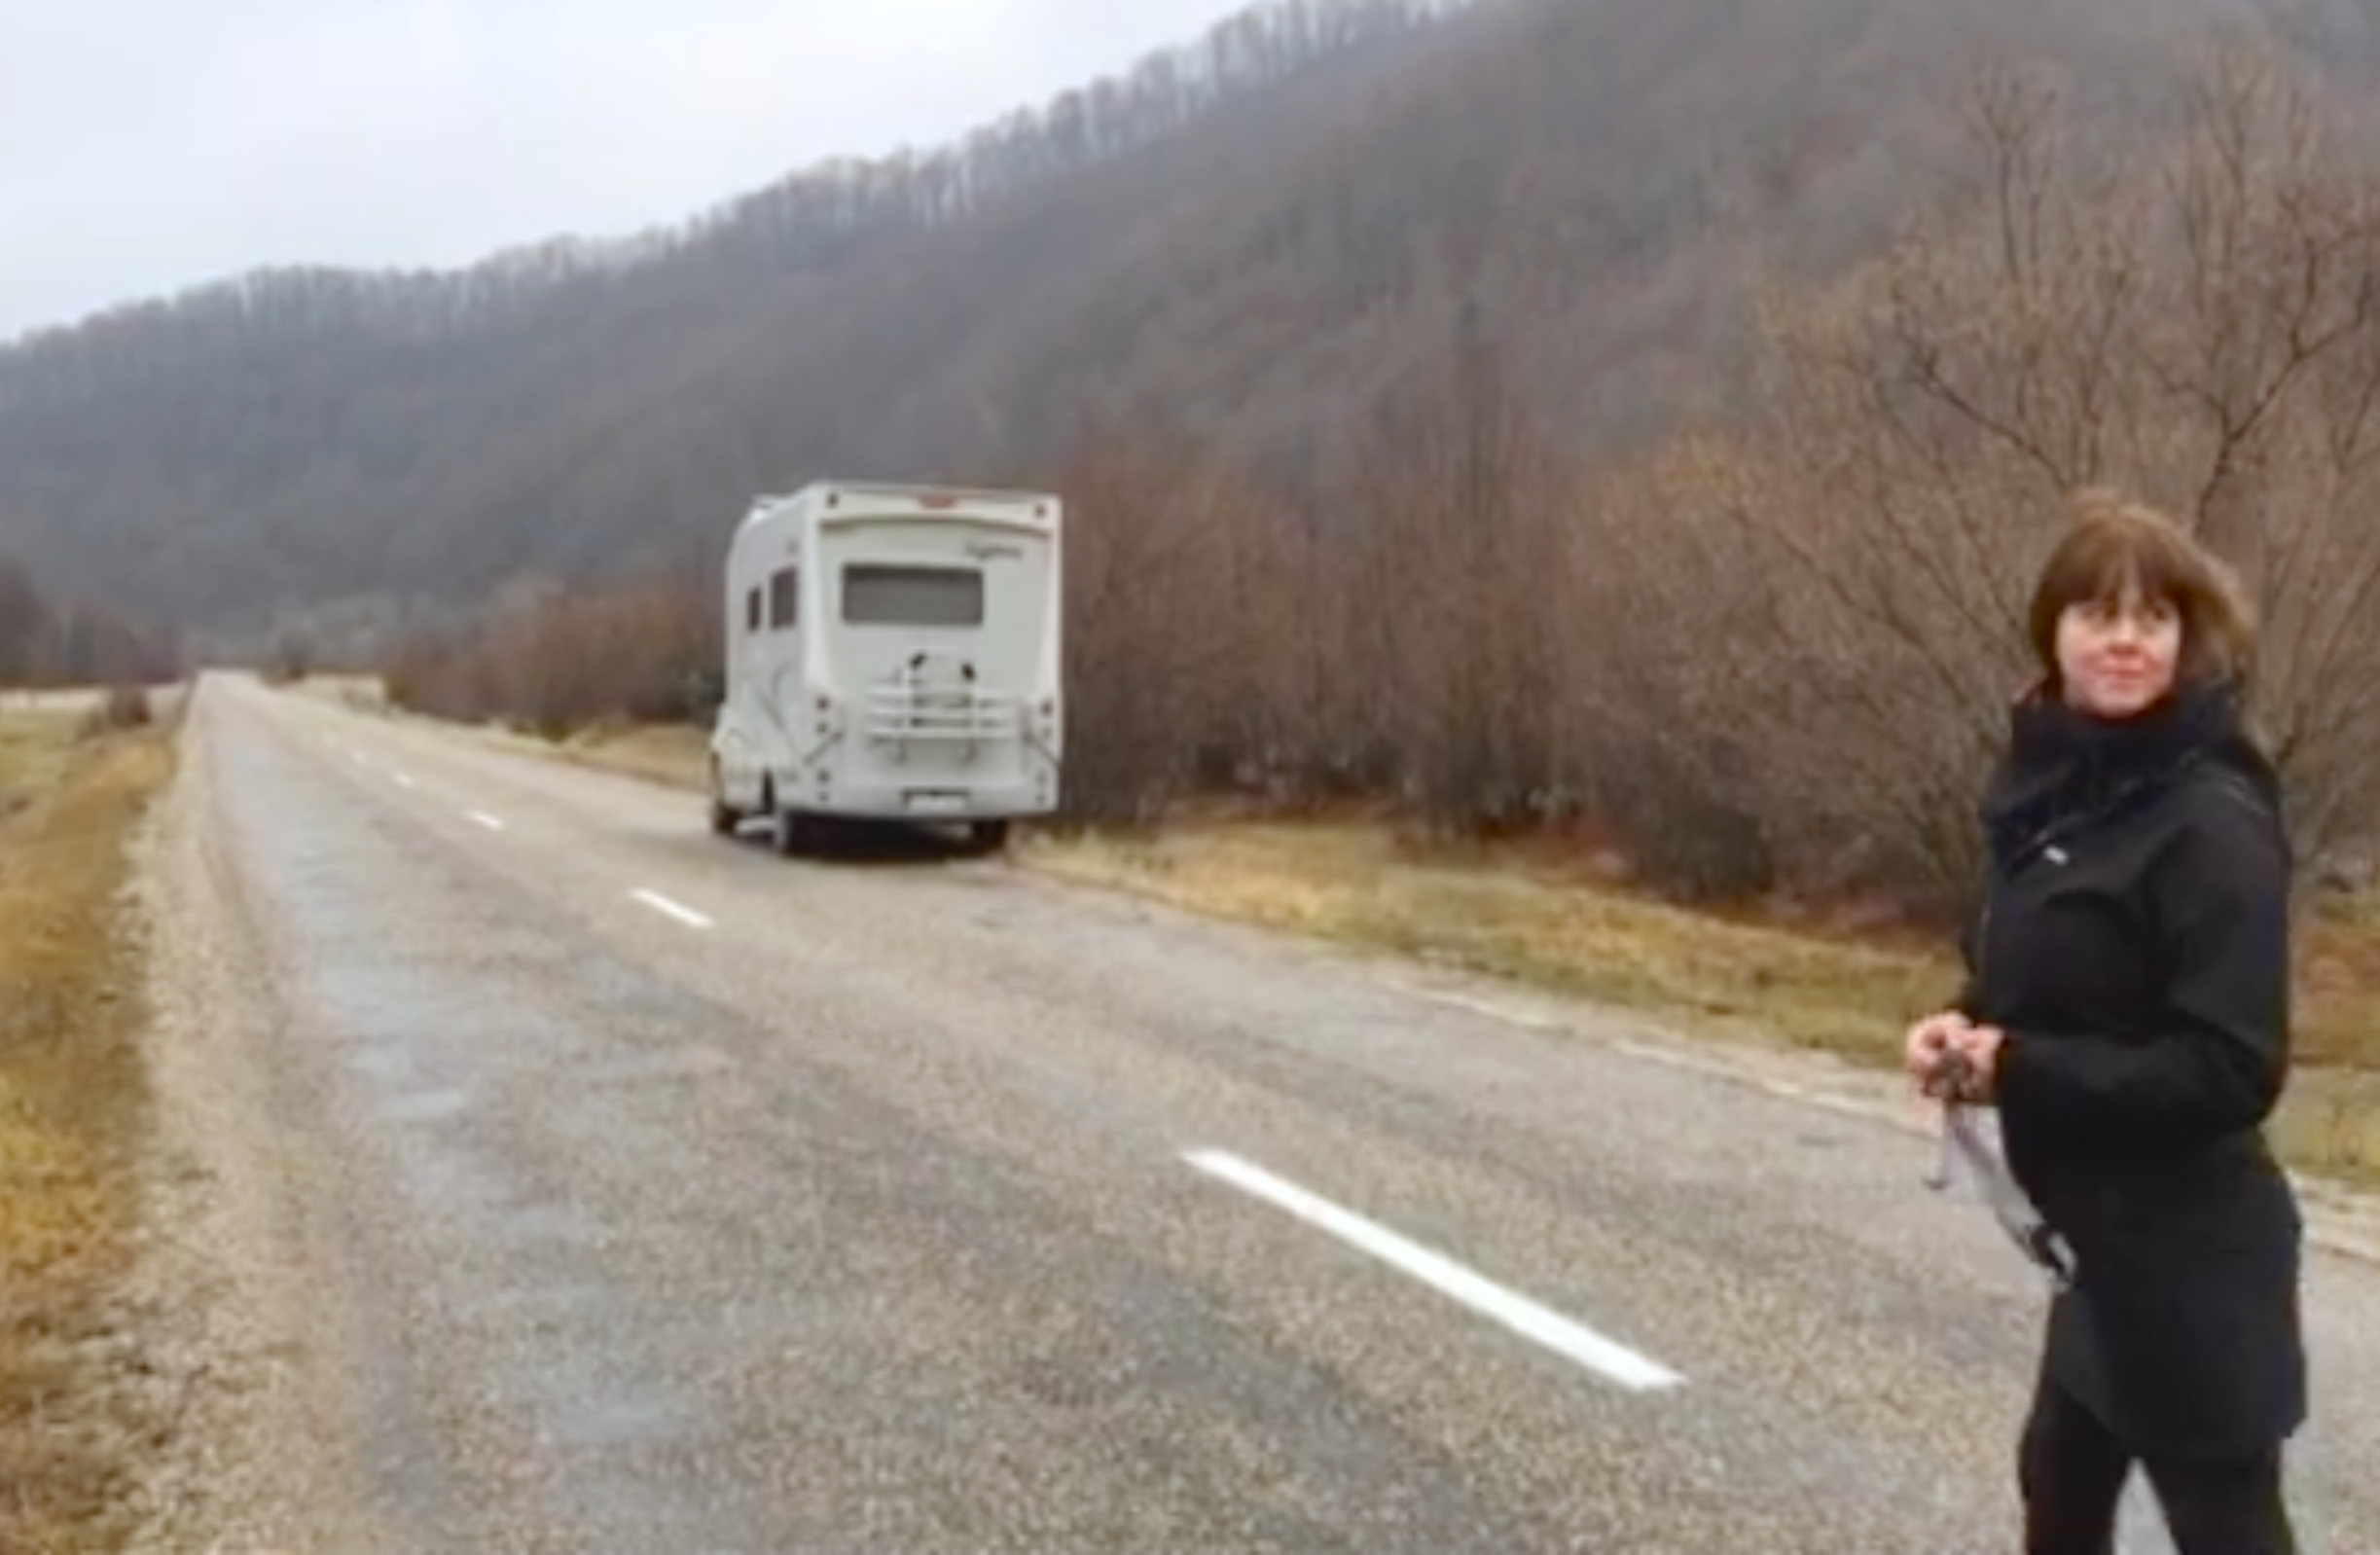 Malin Skinnar with the worlds smallest culture house on wheels in Romania, tara Lapusului